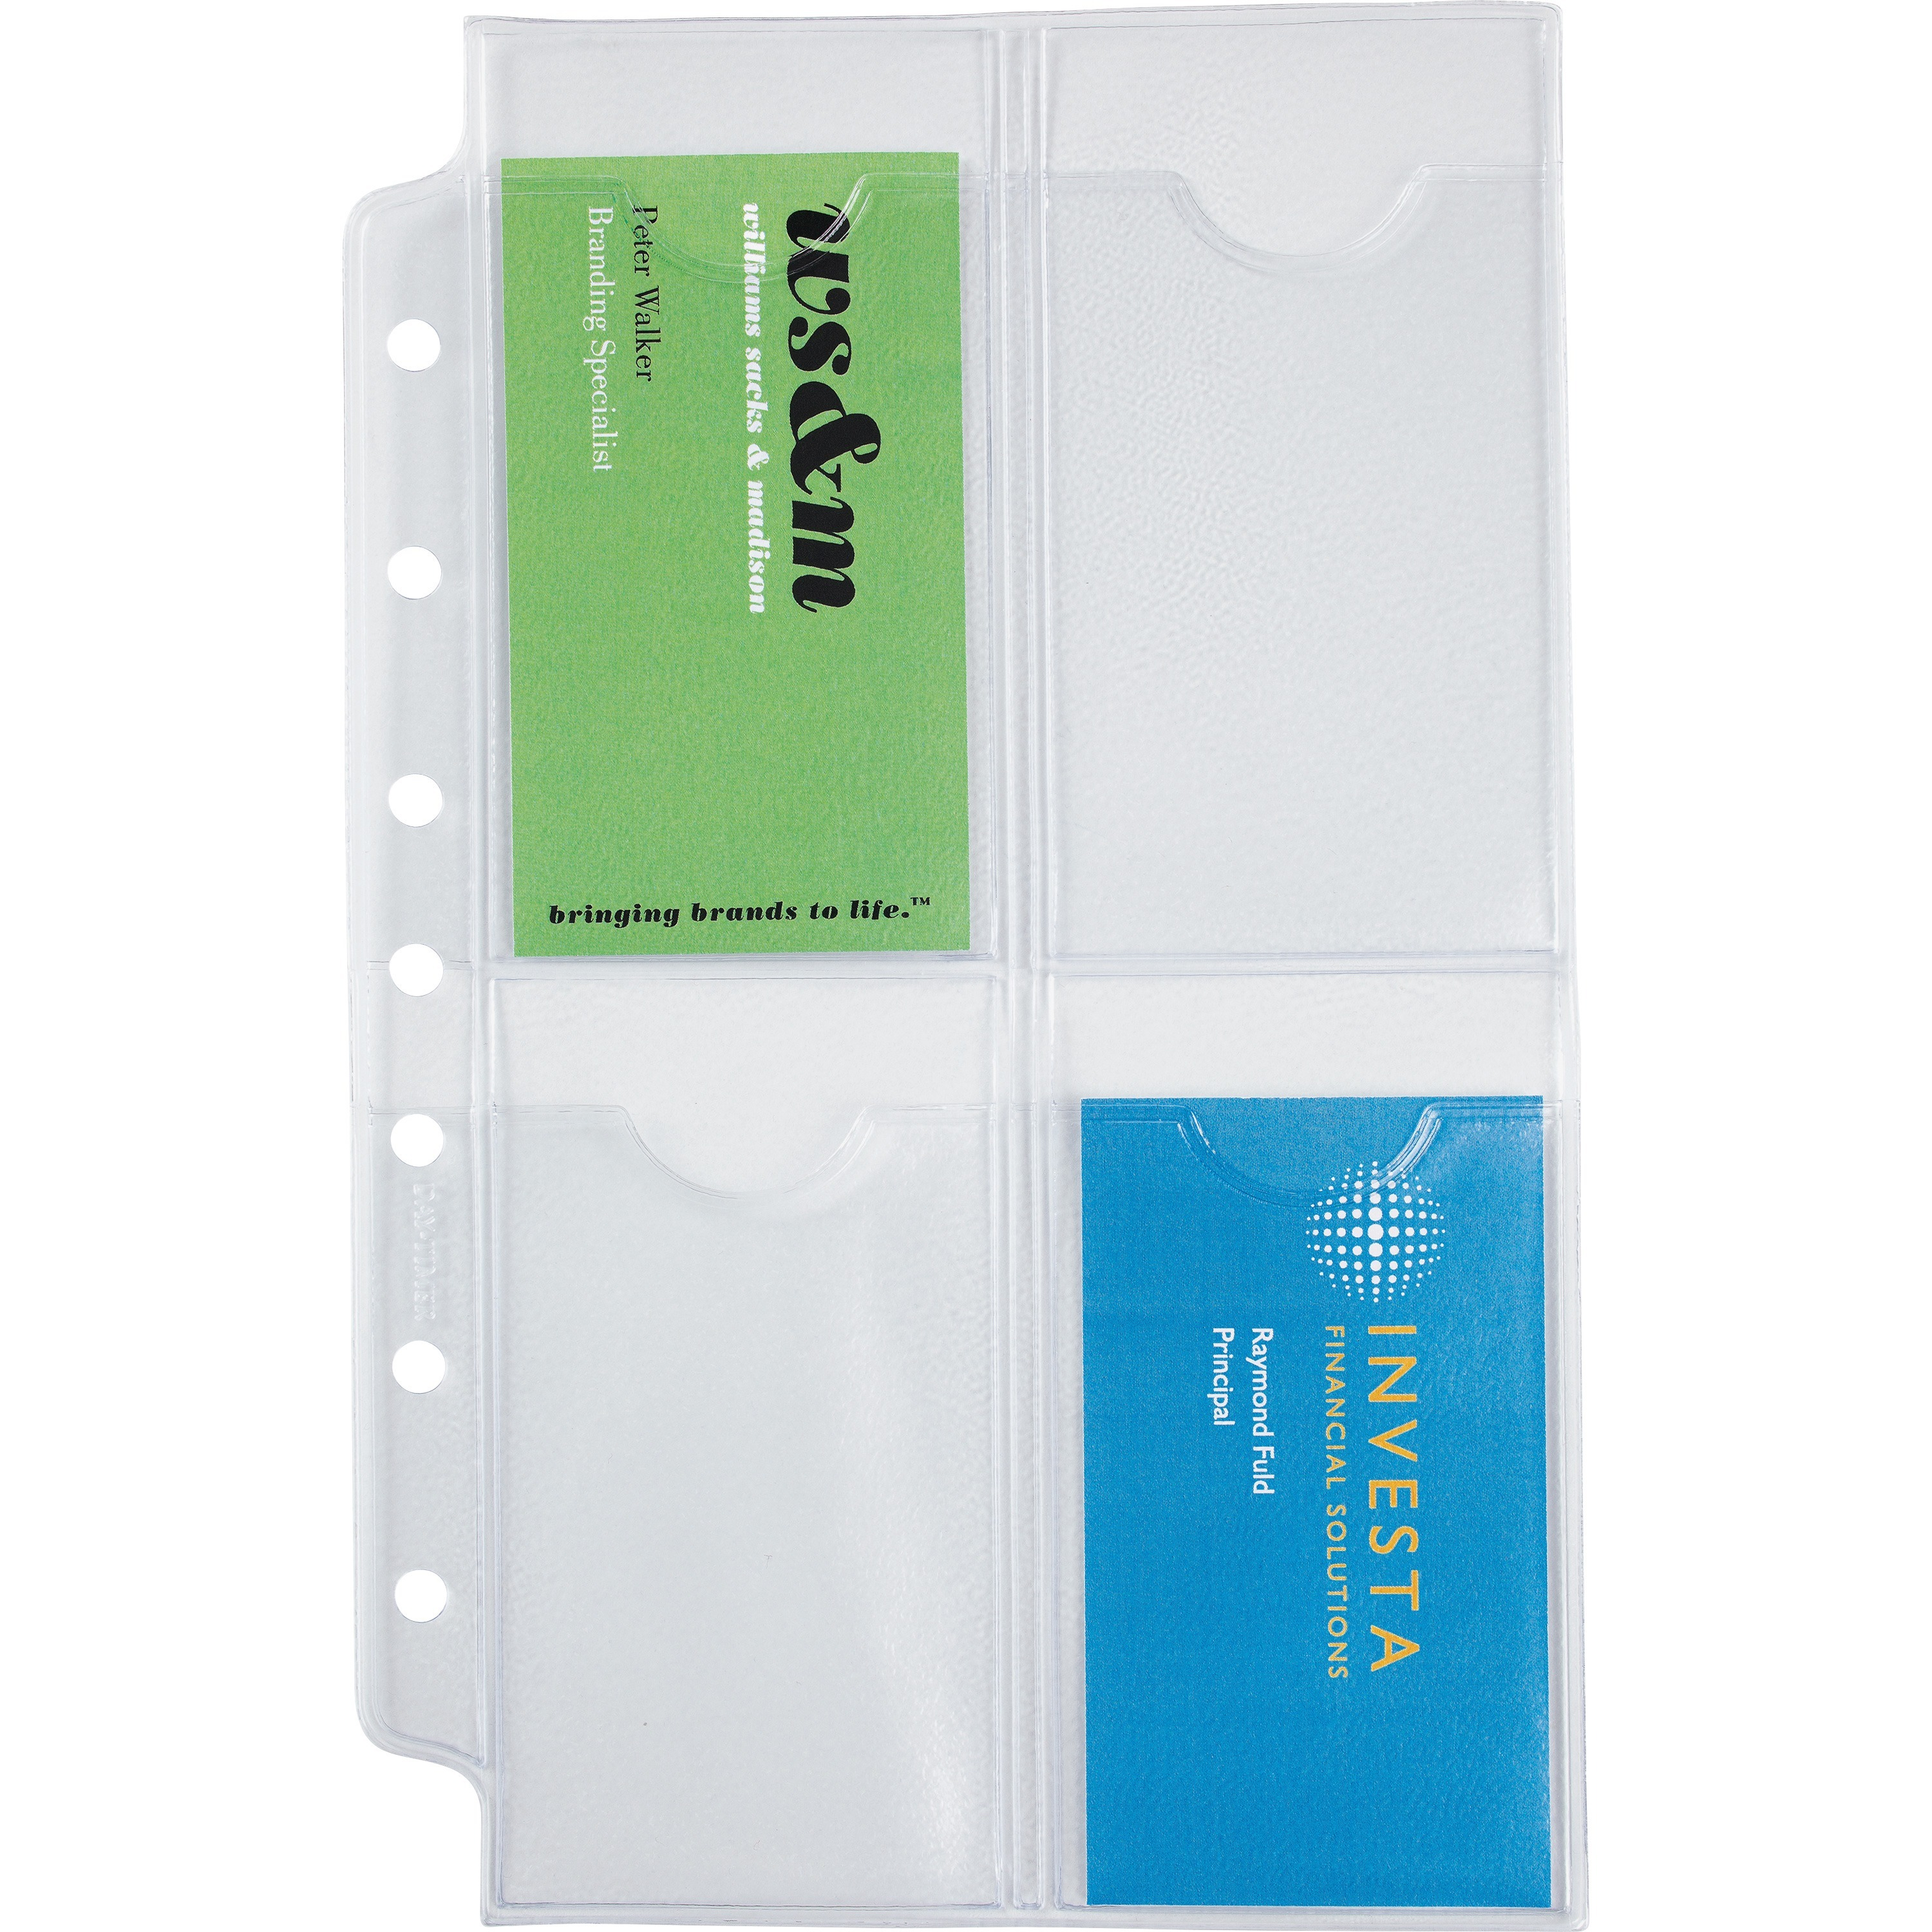 West coast office supplies office supplies binders day timer businesscredit card holder page 850 21590 mm width x 550 13970 mm length reheart Image collections